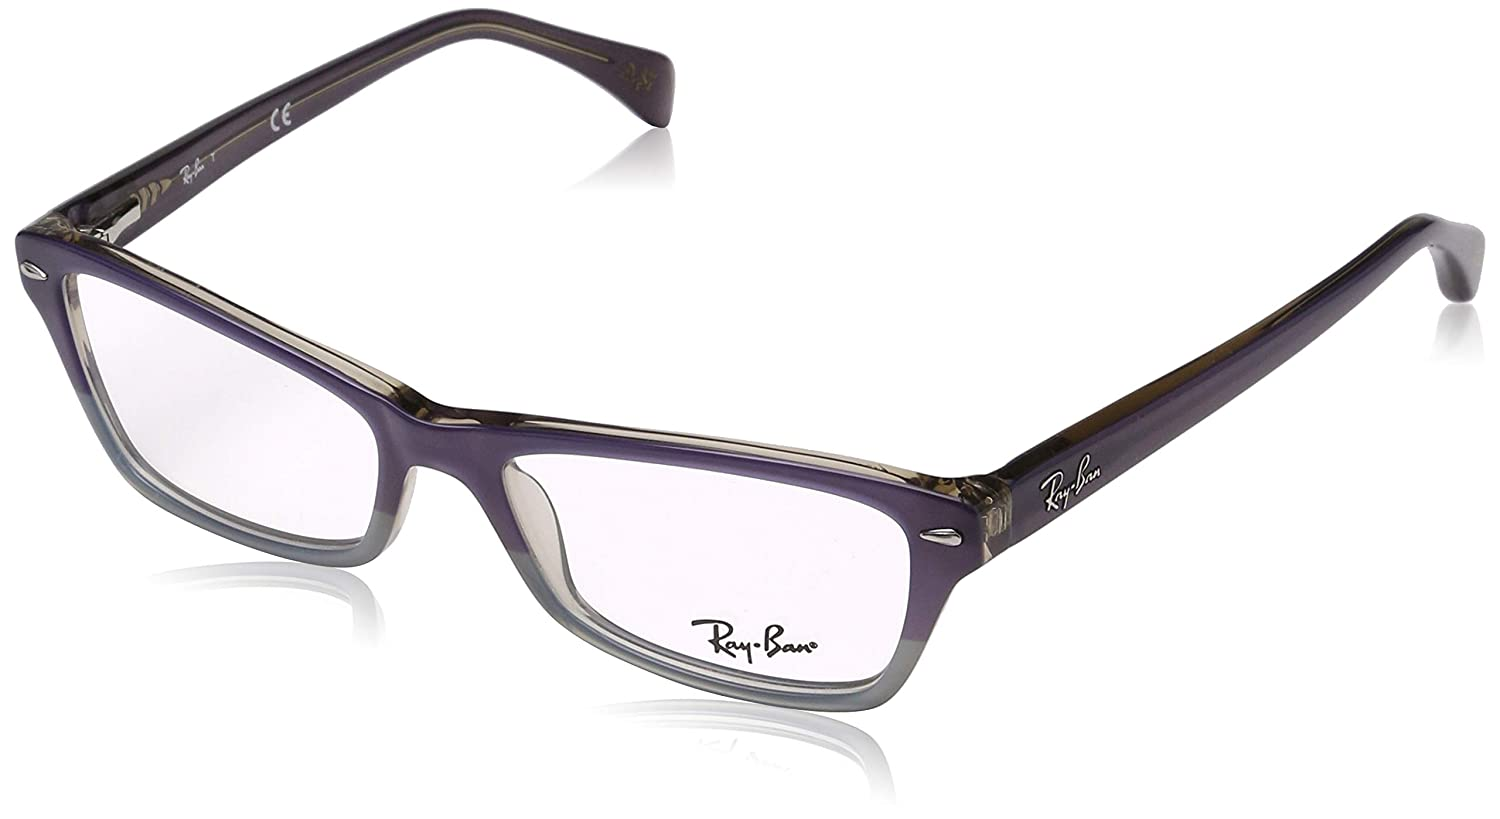 Ray-Ban - RX 5150,Geométrico acetato mujer